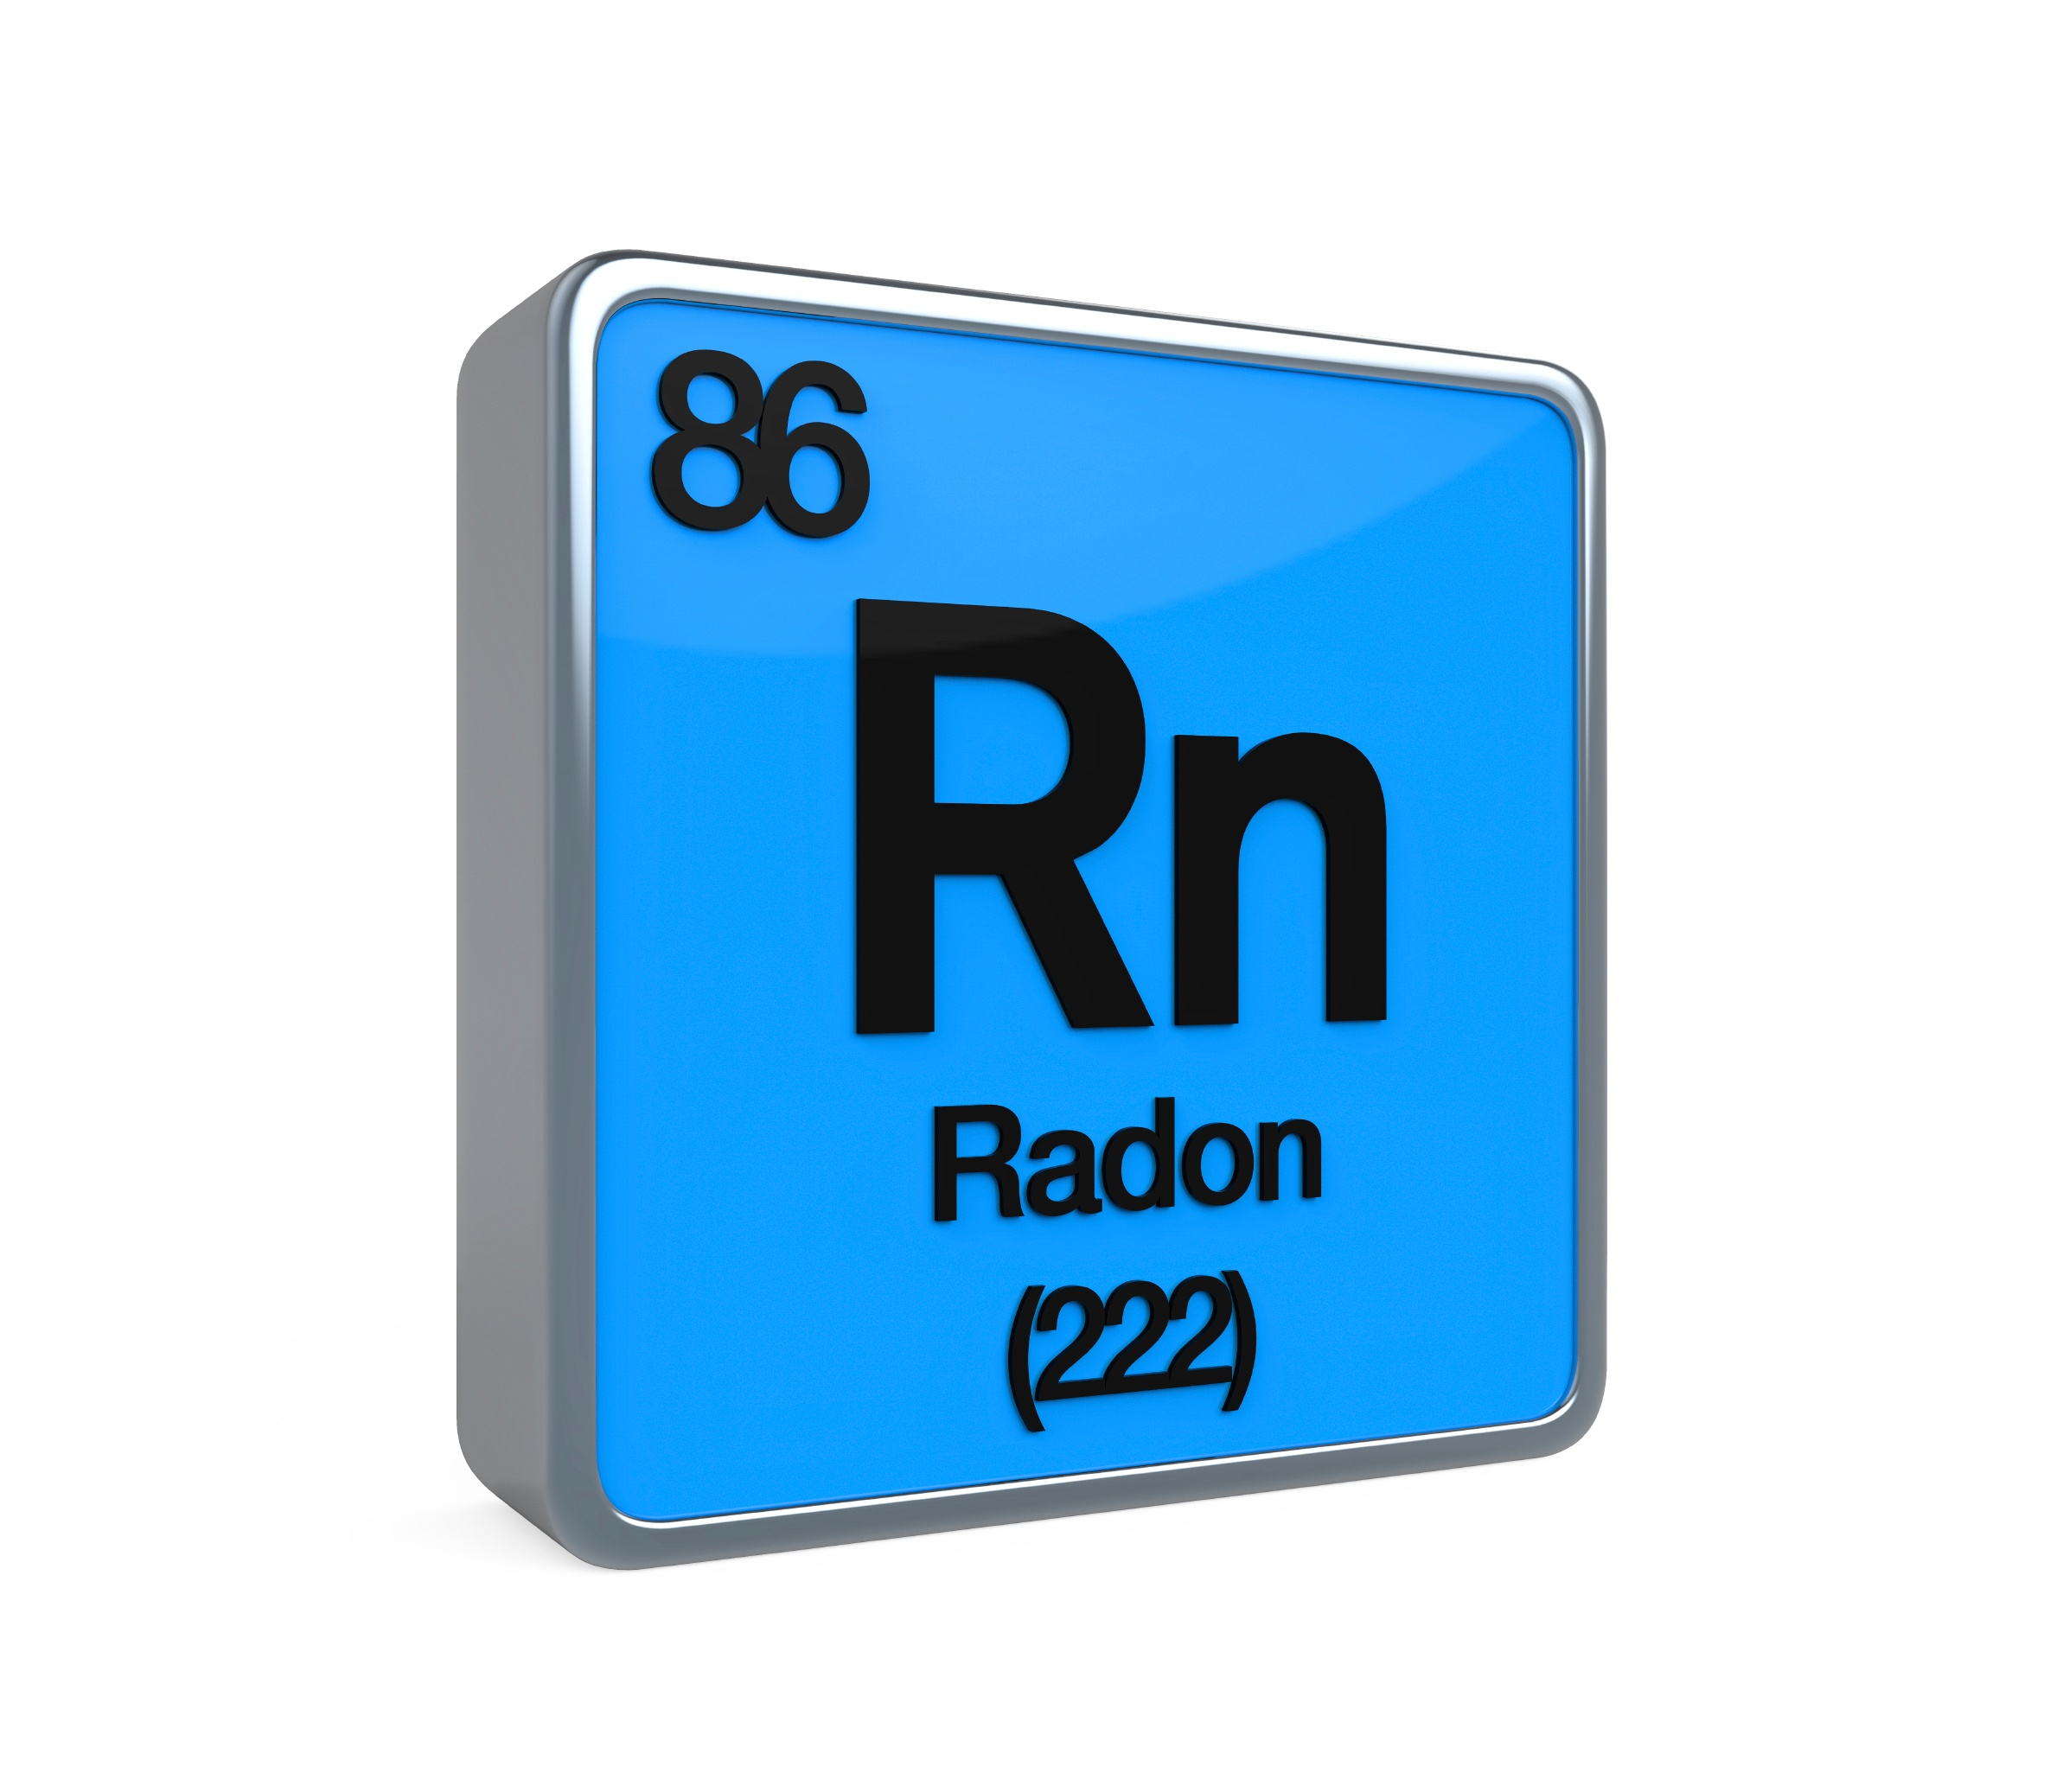 EPA Radon Facts